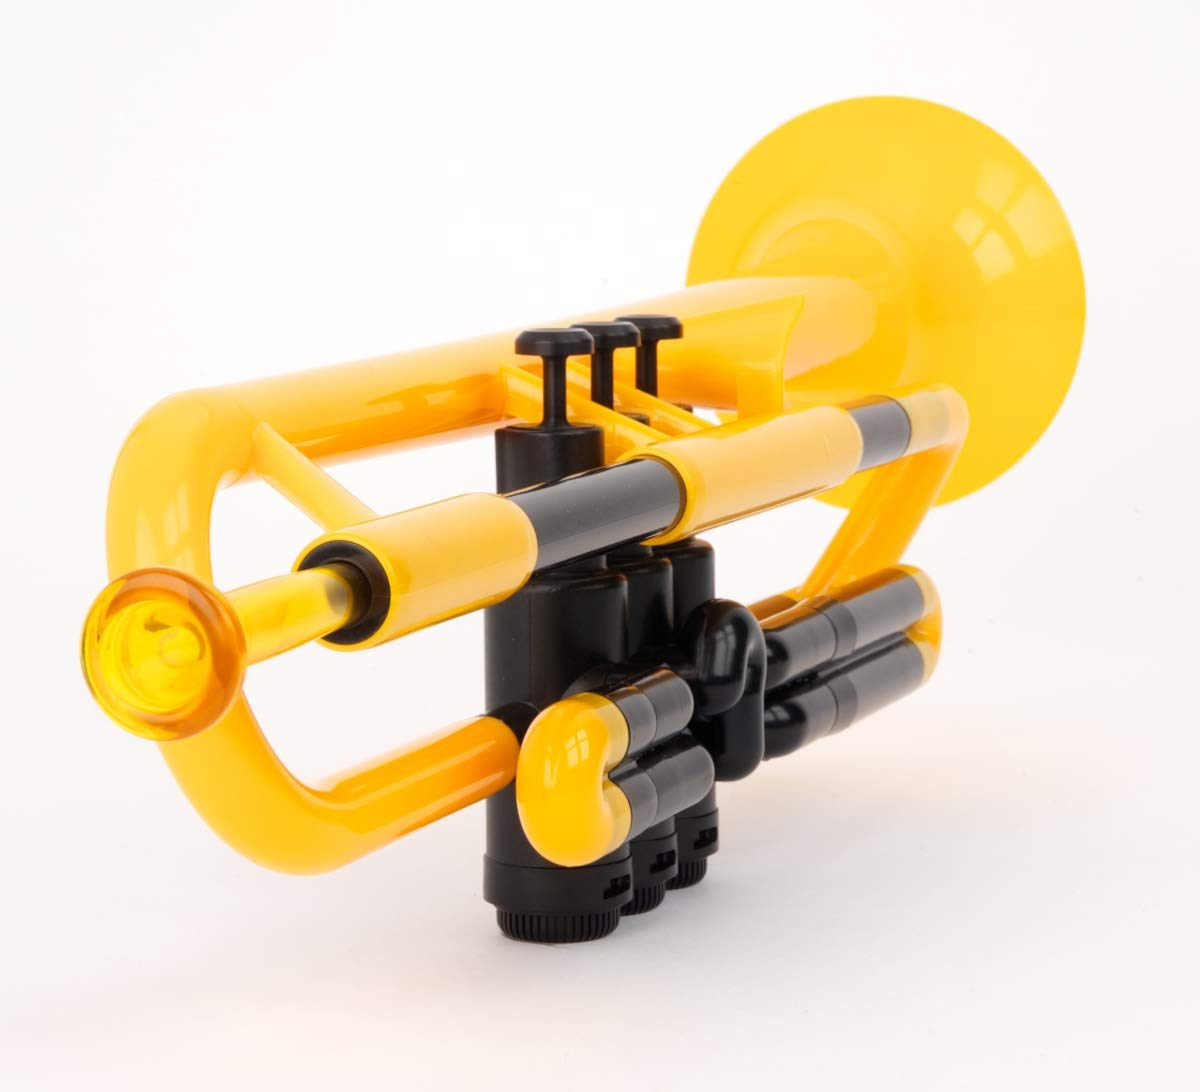 pBone Jiggs pTrumpet Plastic Trumpet w/Gig Bag and 3C and 5C Mouthpieces, Yellow, PTRUMPET1Y) by pBone (Image #4)